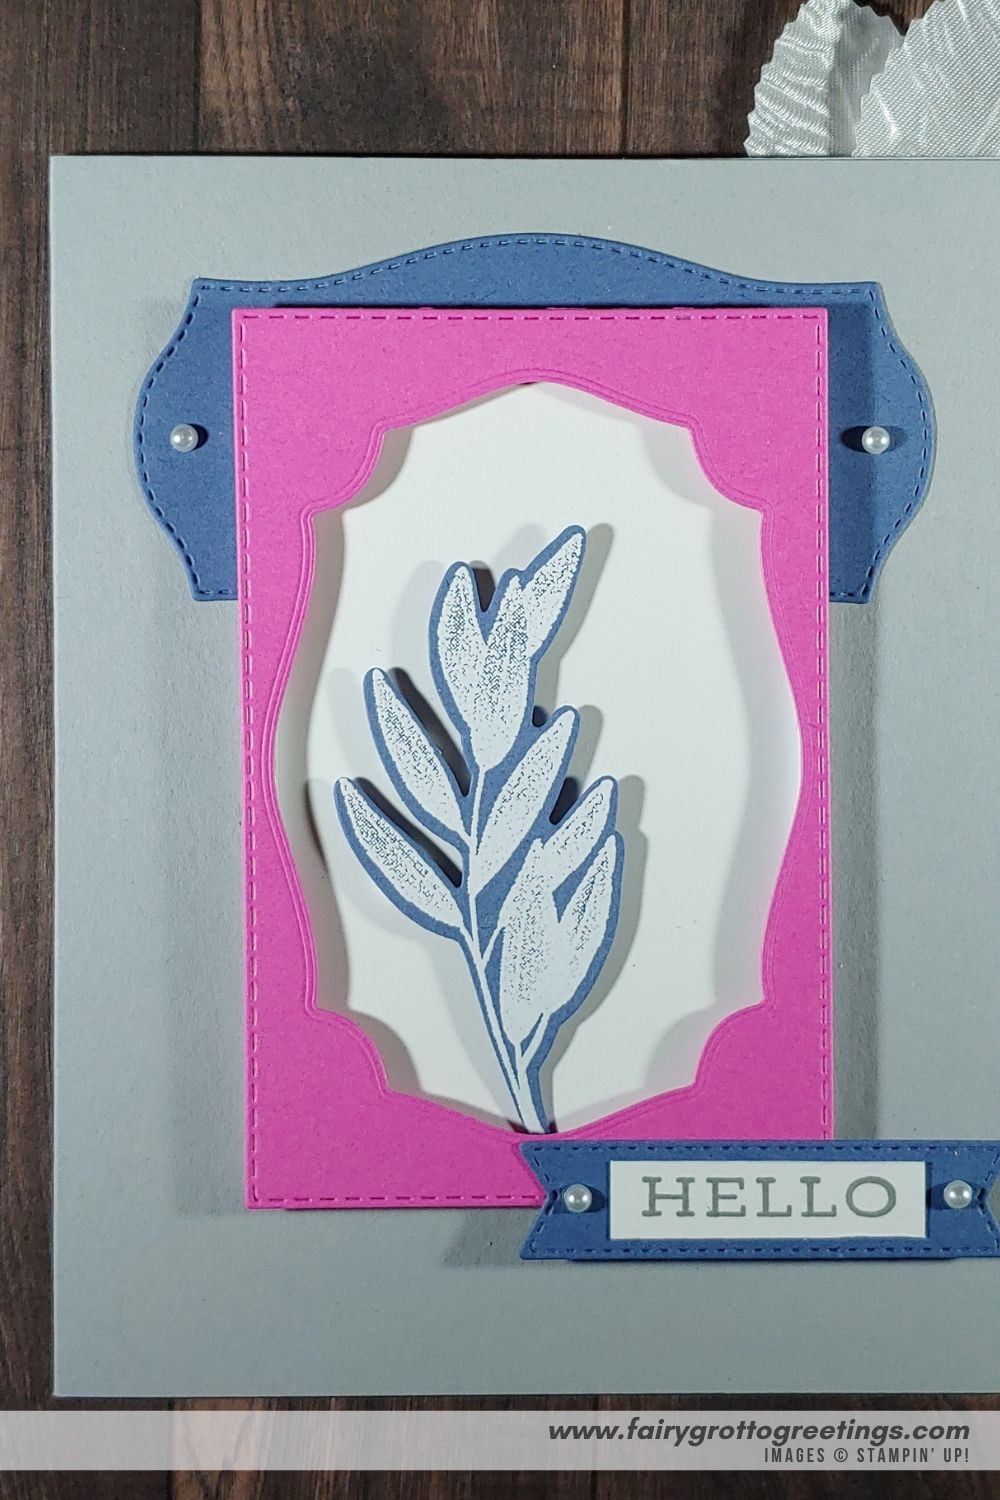 Image of handmade card using Stampin' Up! Products.  Features the Forever Fern stamp set, matching Forever Flourishing dies and Tasteful Labels dies. Done in Misty Moonlight, Magenta Madness and Smoky Slate colors.